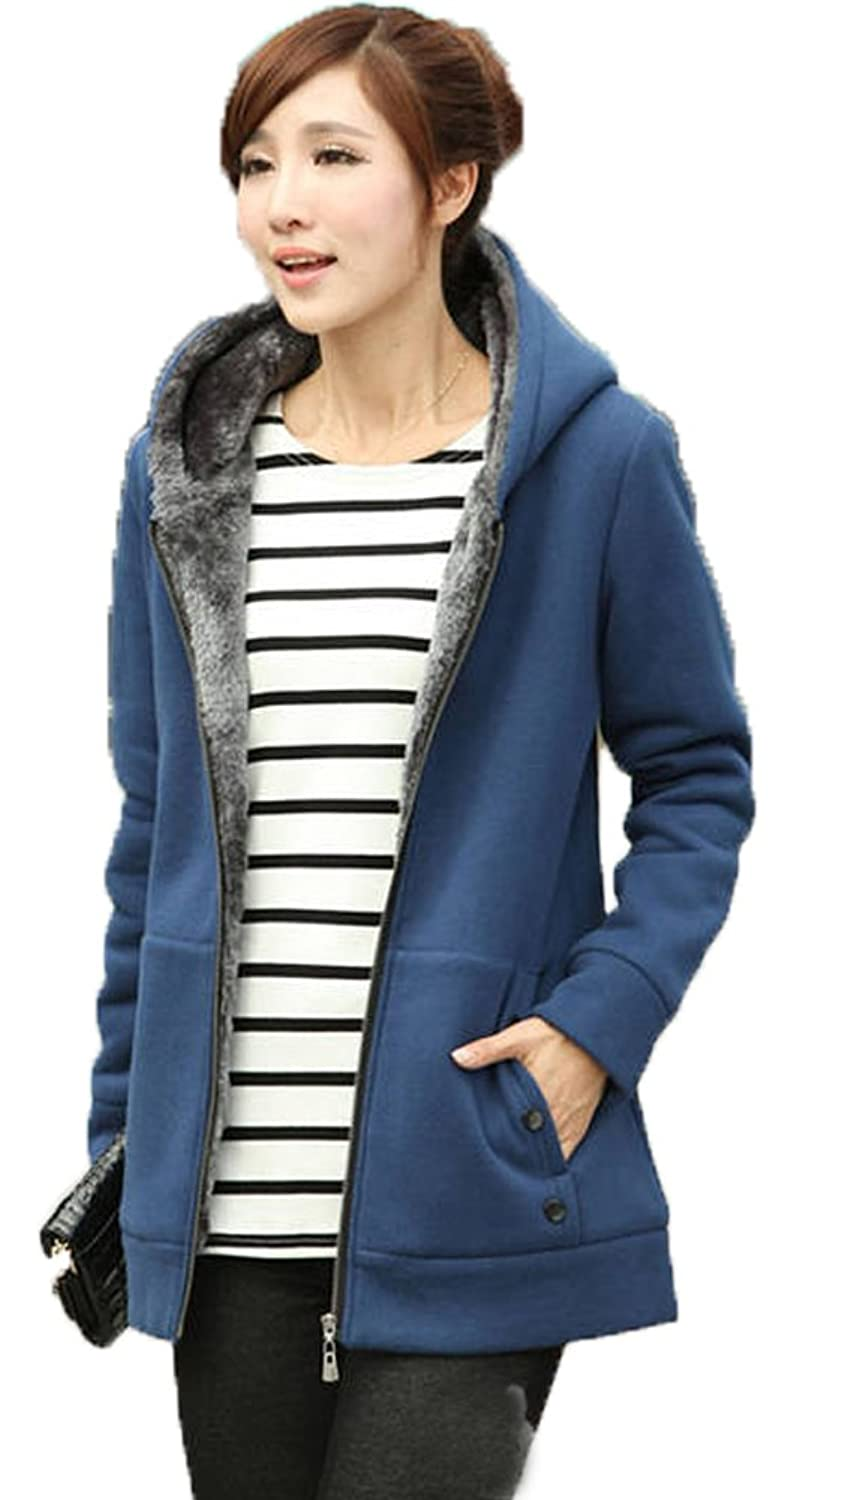 Jusfitsu Women's Fleece Hoodies Casual Winter Faux Fur Zip Up Coat Jacket Outerwear Plus Size (UK XS-3XL)